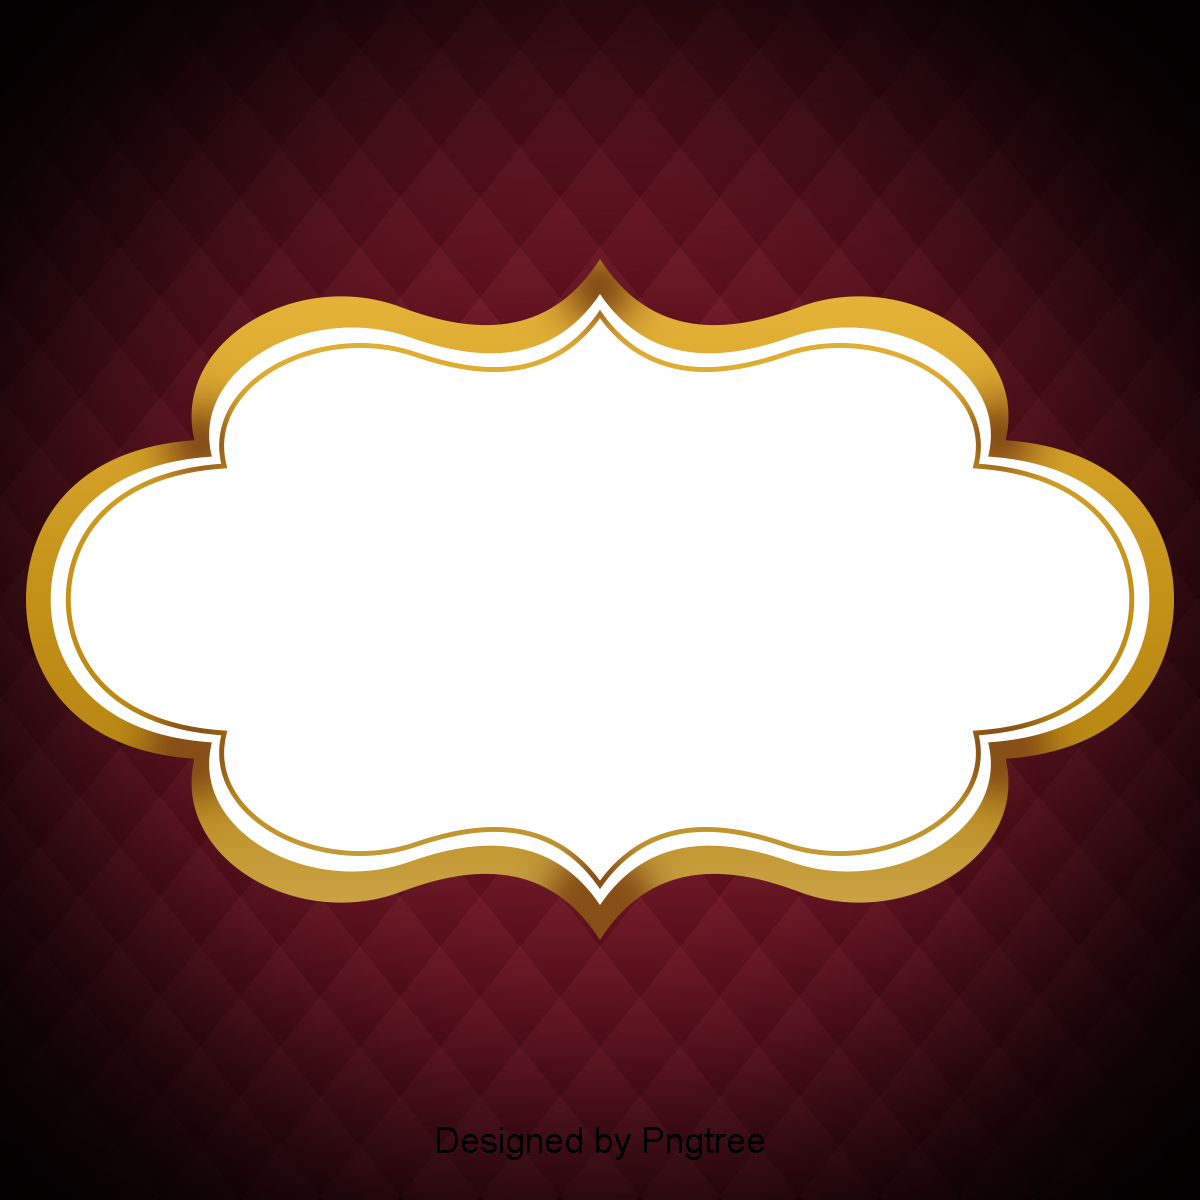 Vector European Border Frame European Border Retro Borders Png Transparent Clipart Image And Psd File For Free Download Banner Design Inspiration Wedding Background Images Background For Photography